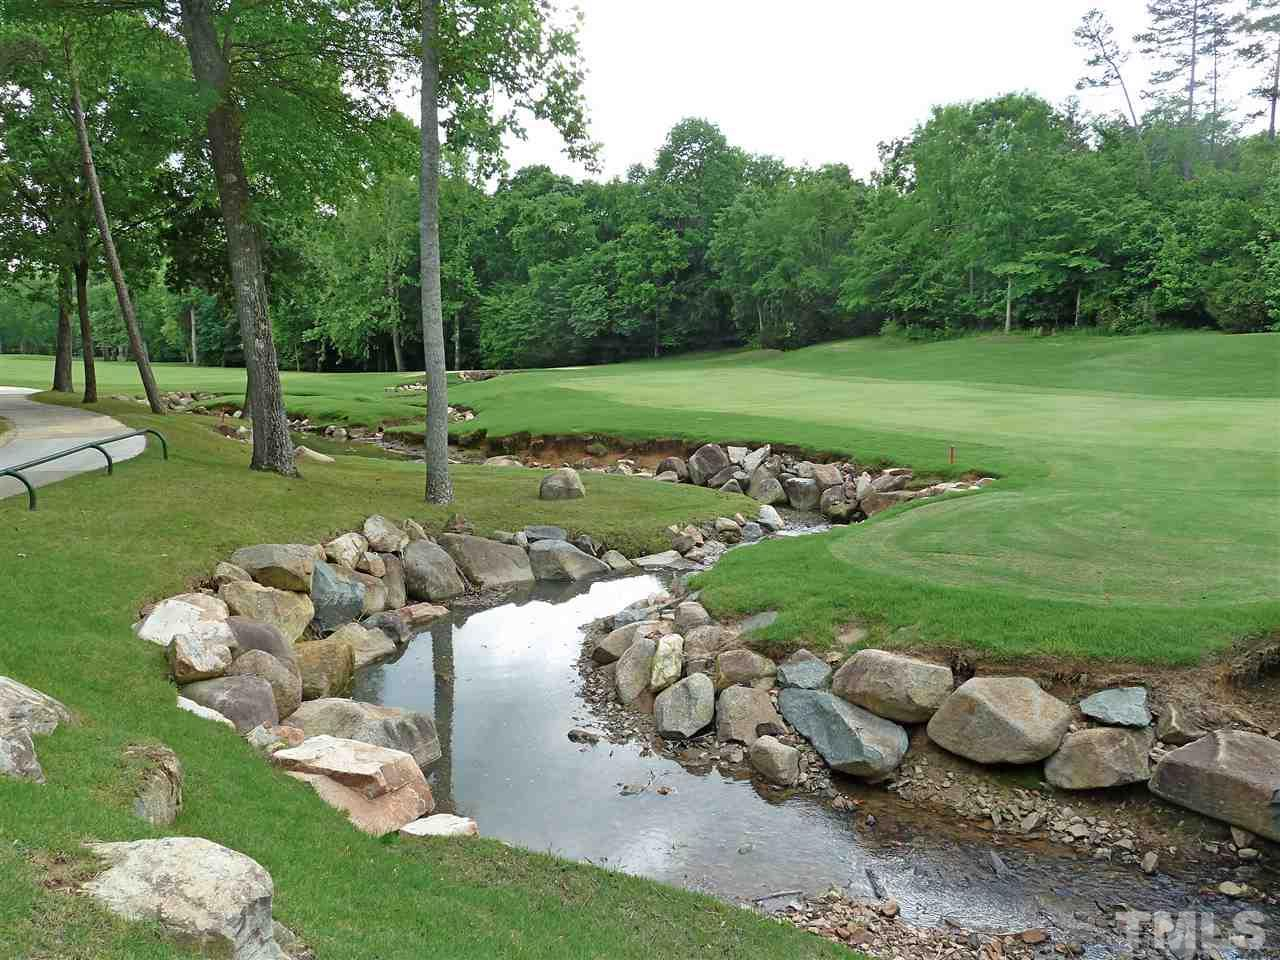 18 hole Tom Fazio golf course offers challenges and fun for all ages and abilities.